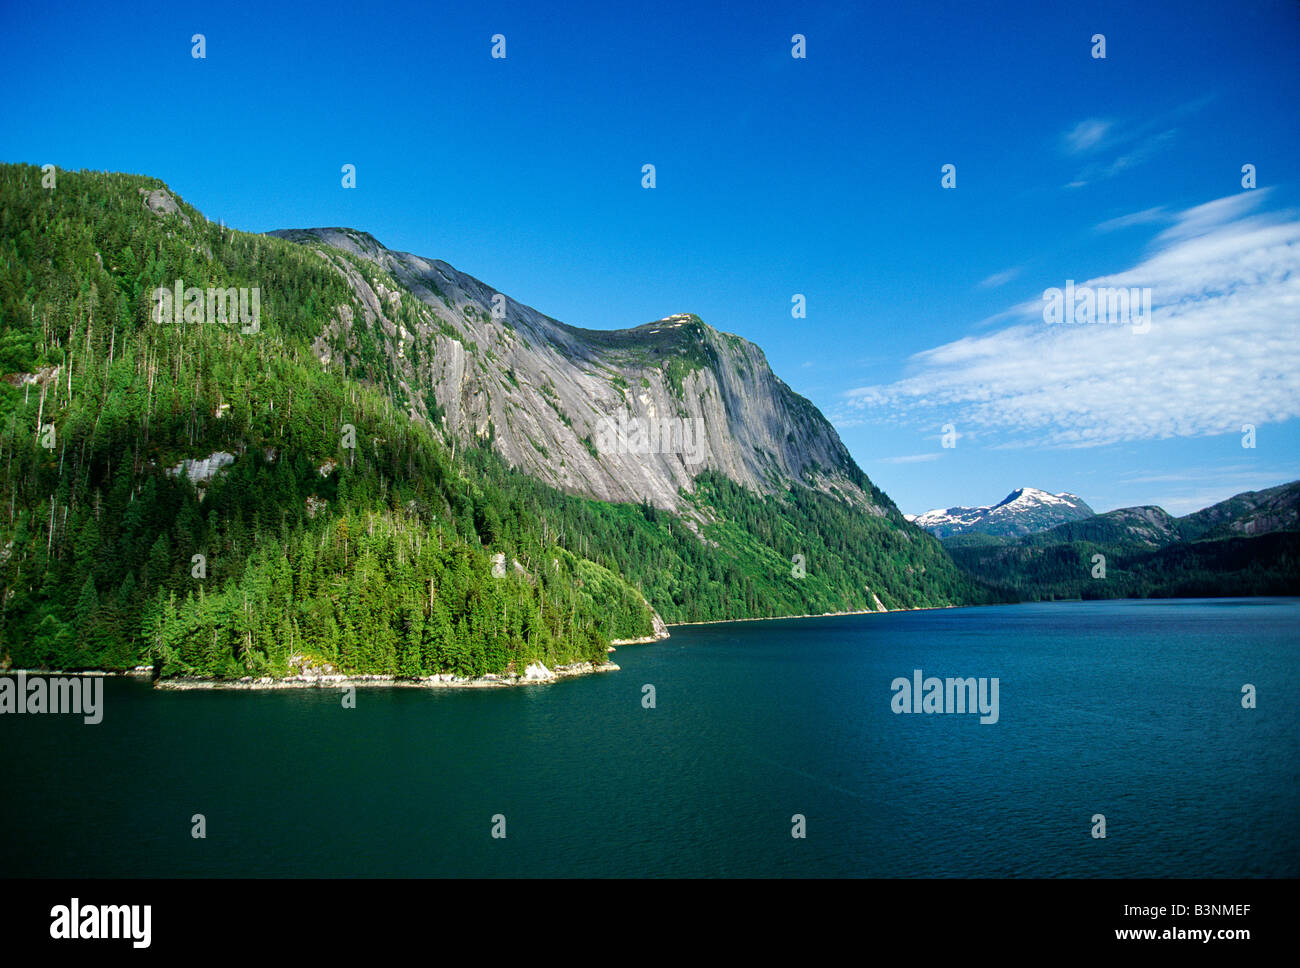 Tongass National Forest, Misty Fiord National Monument, Alaska, USA - Stock Image